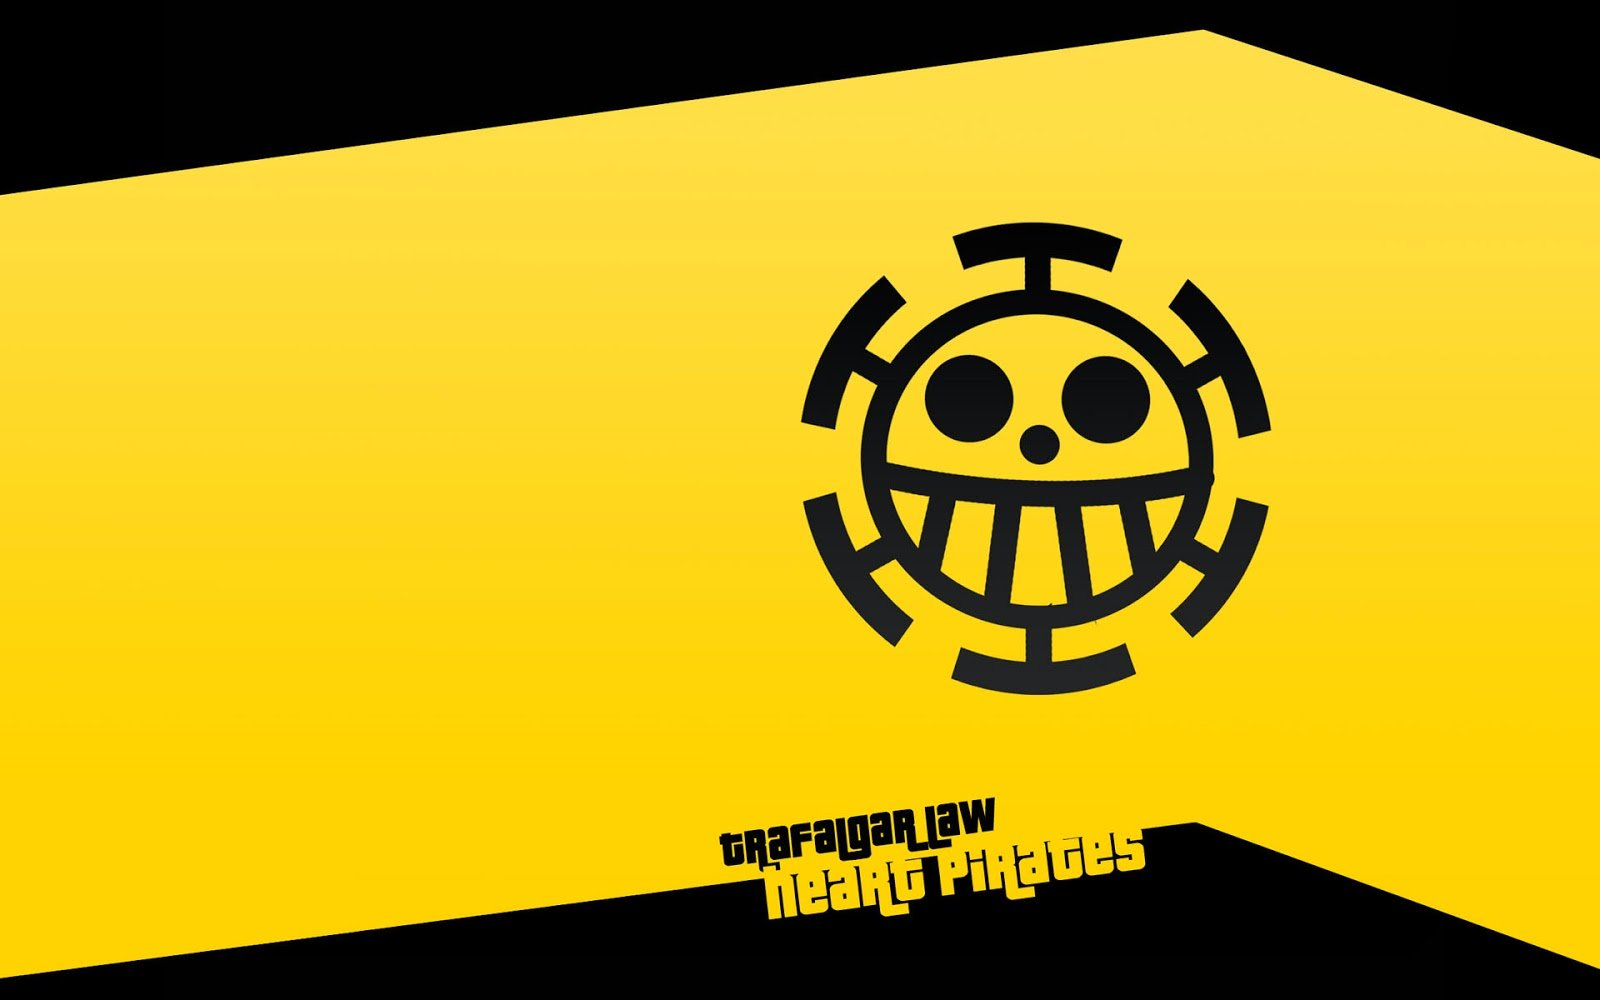 Heart Pirates Logo Emblem One Piece Anime Hd Wallpaper 1920x1200 1600x1000